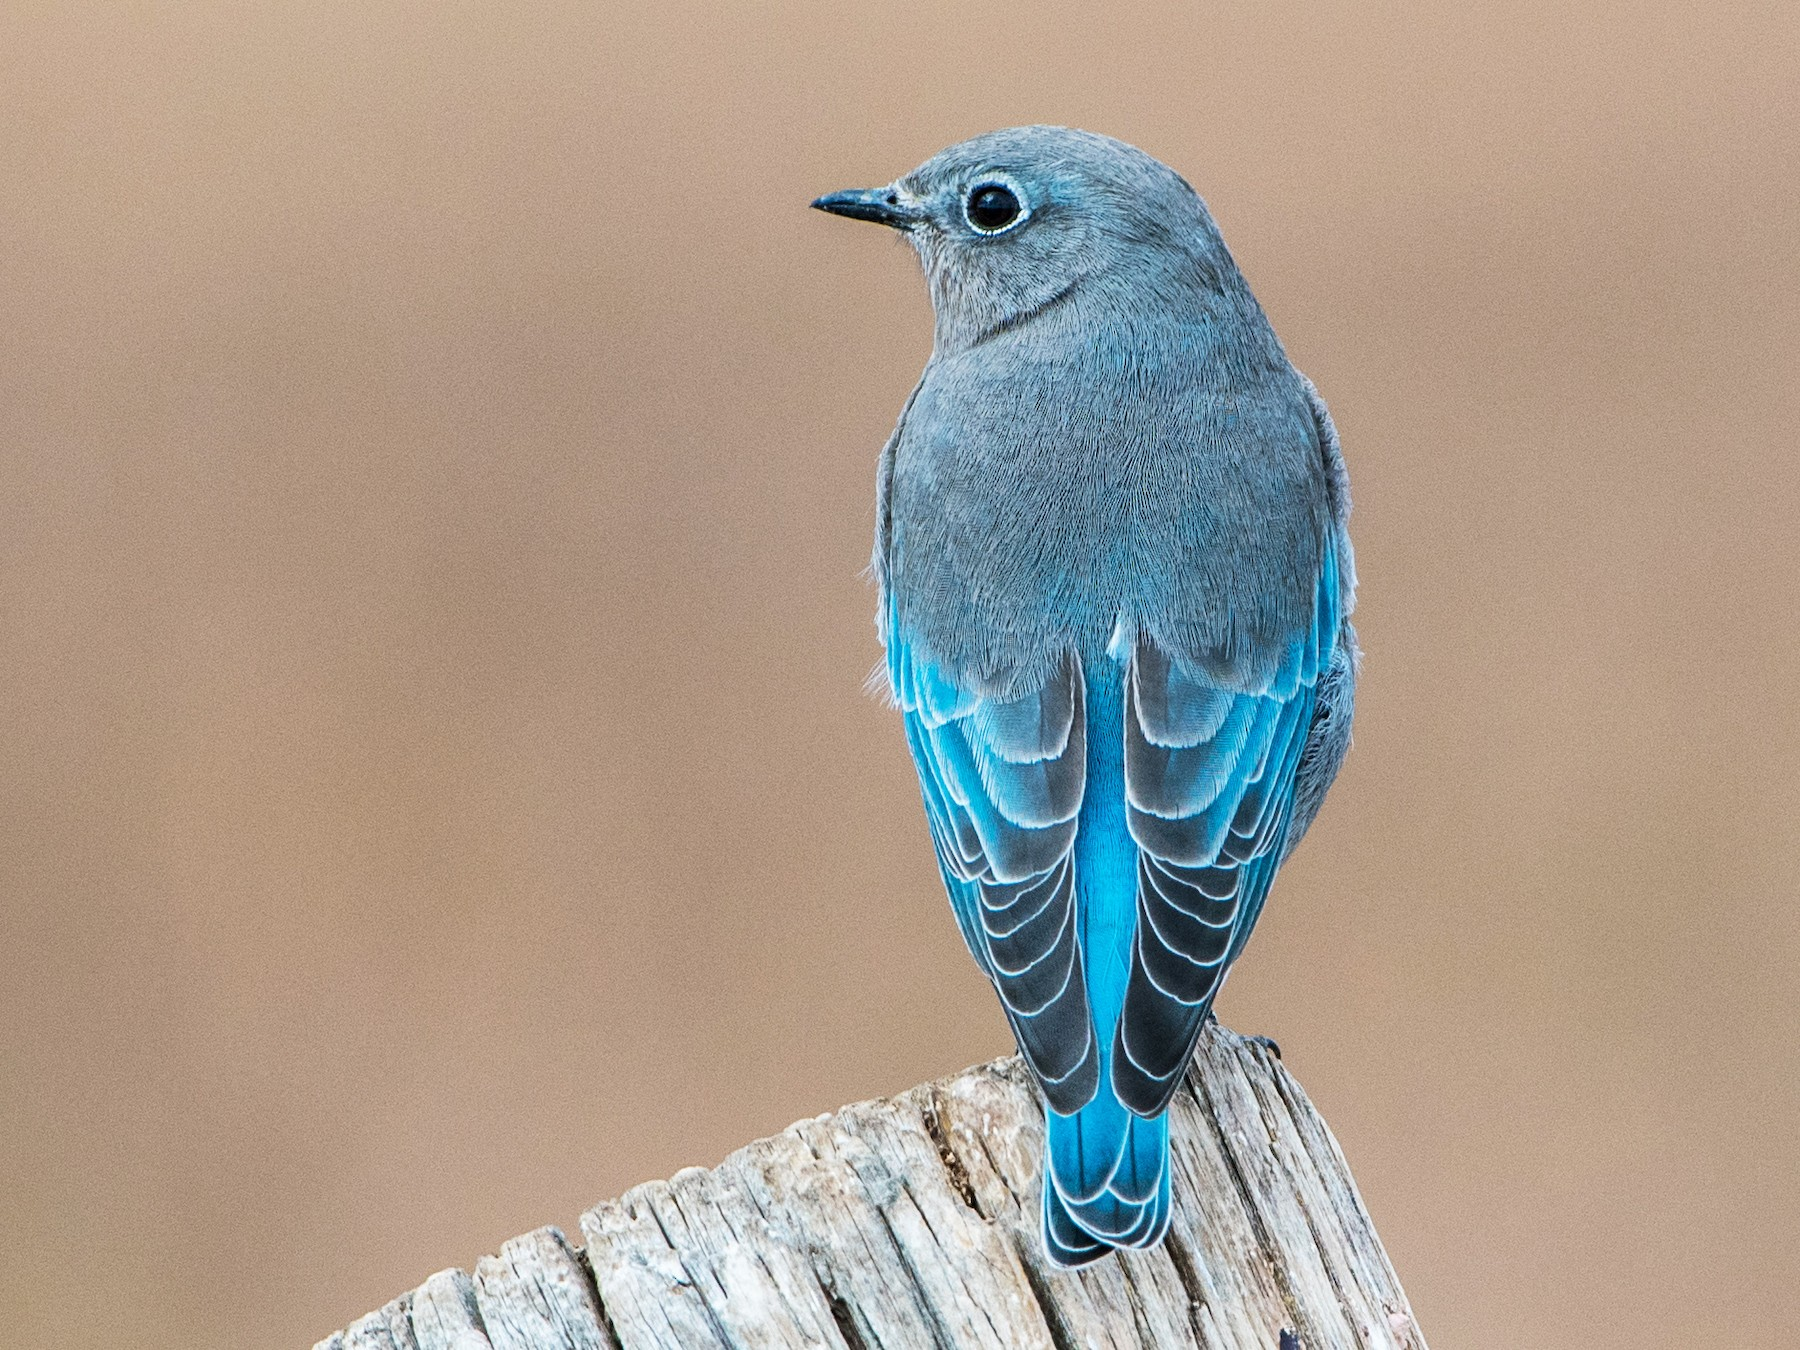 Mountain Bluebird - Jay Langford